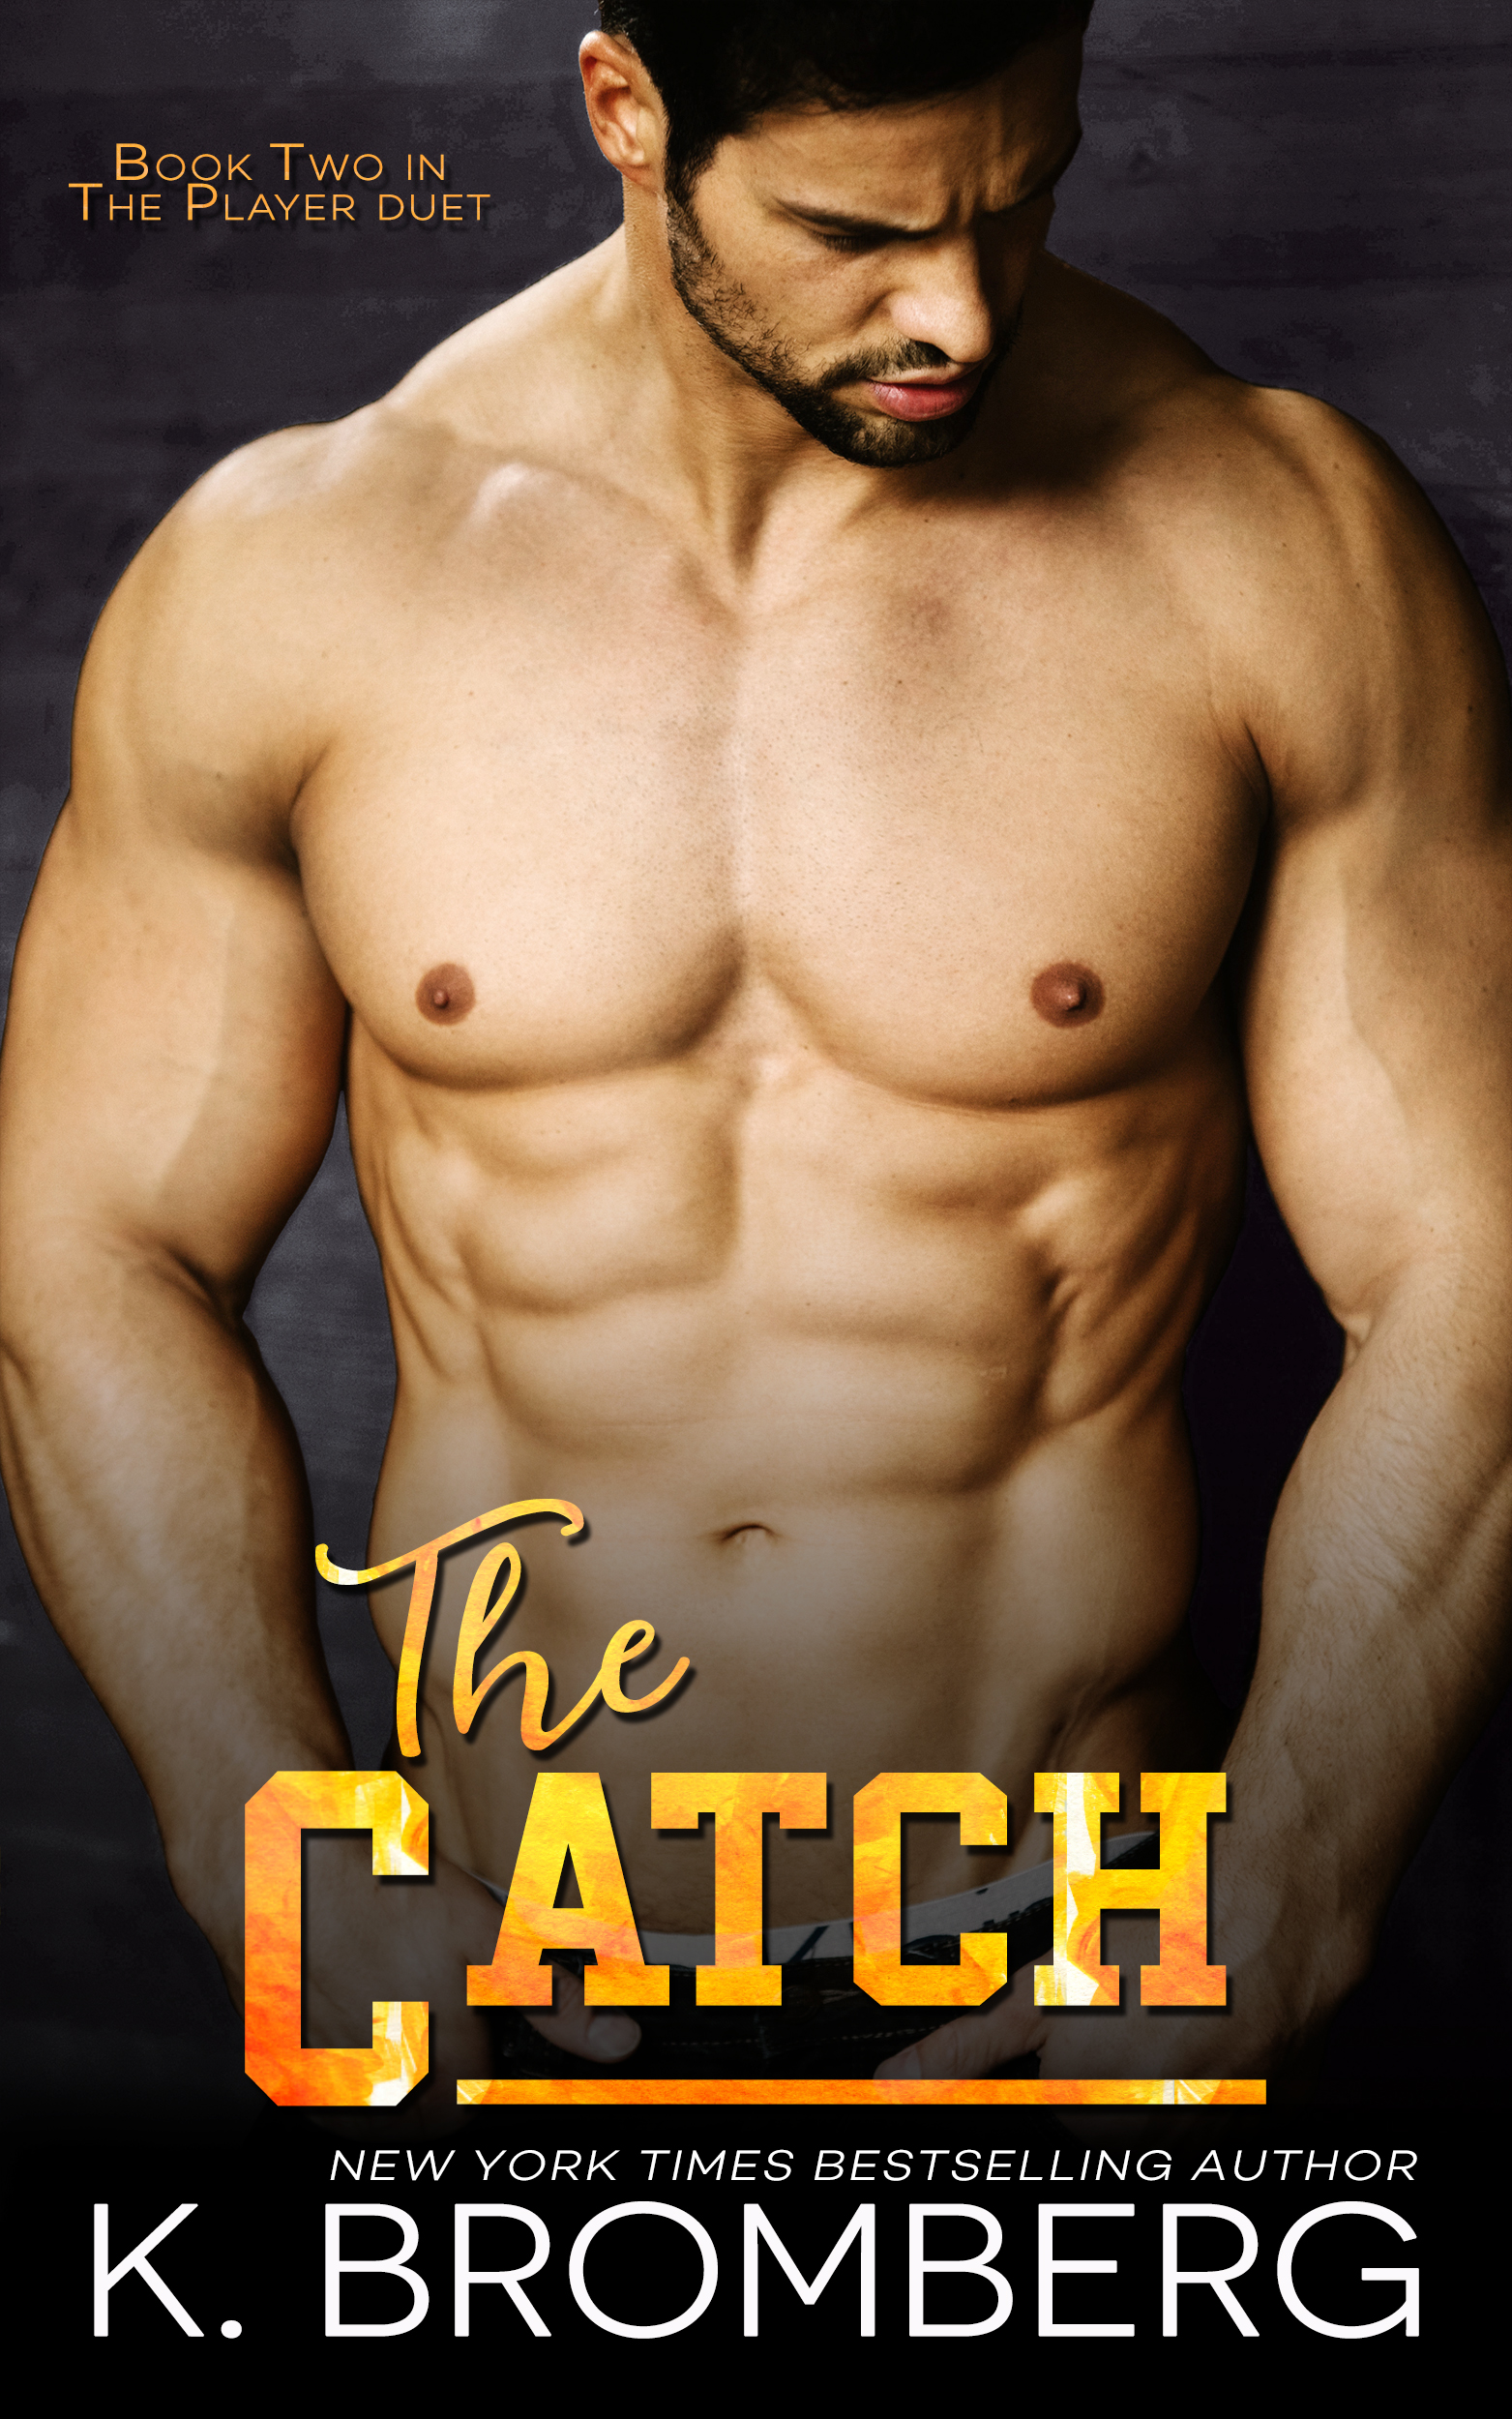 K. Bromberg reveals the cover for The Catch!